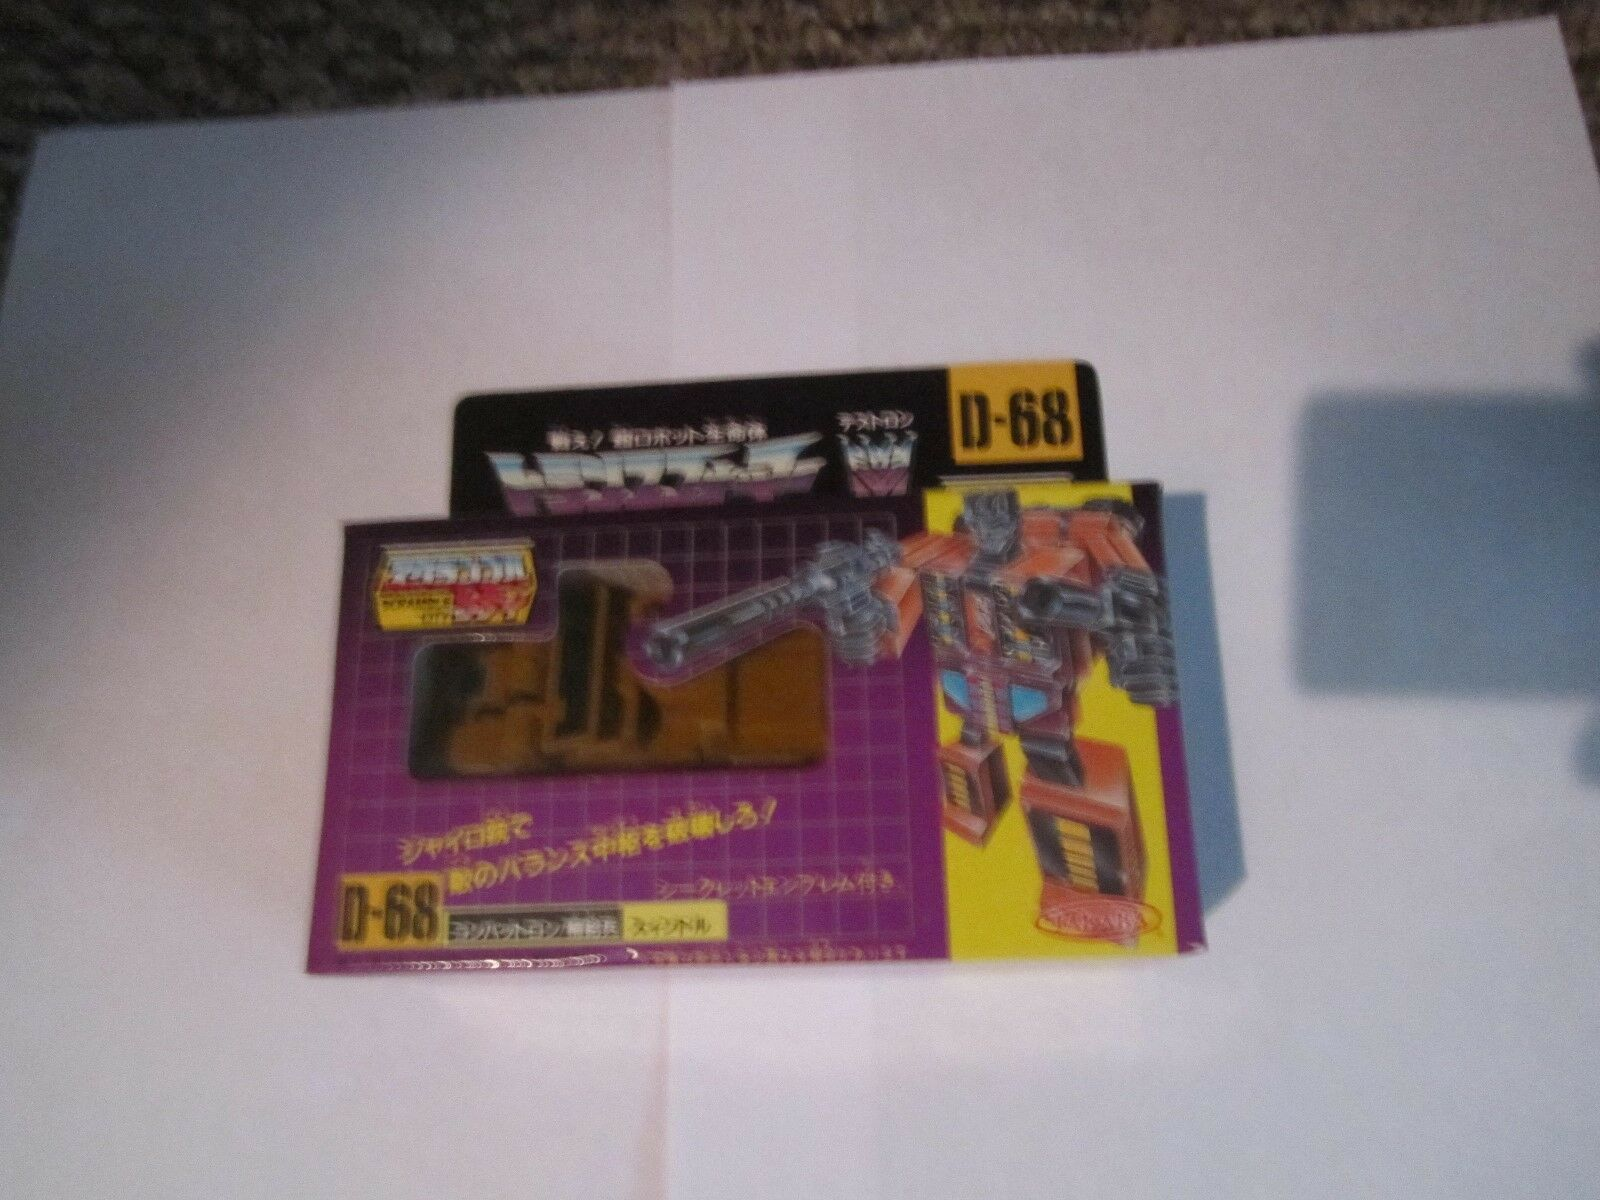 G1 Japanese Transformers D-68 Swindle Combiner Bruticus MISB MIB afa worthy